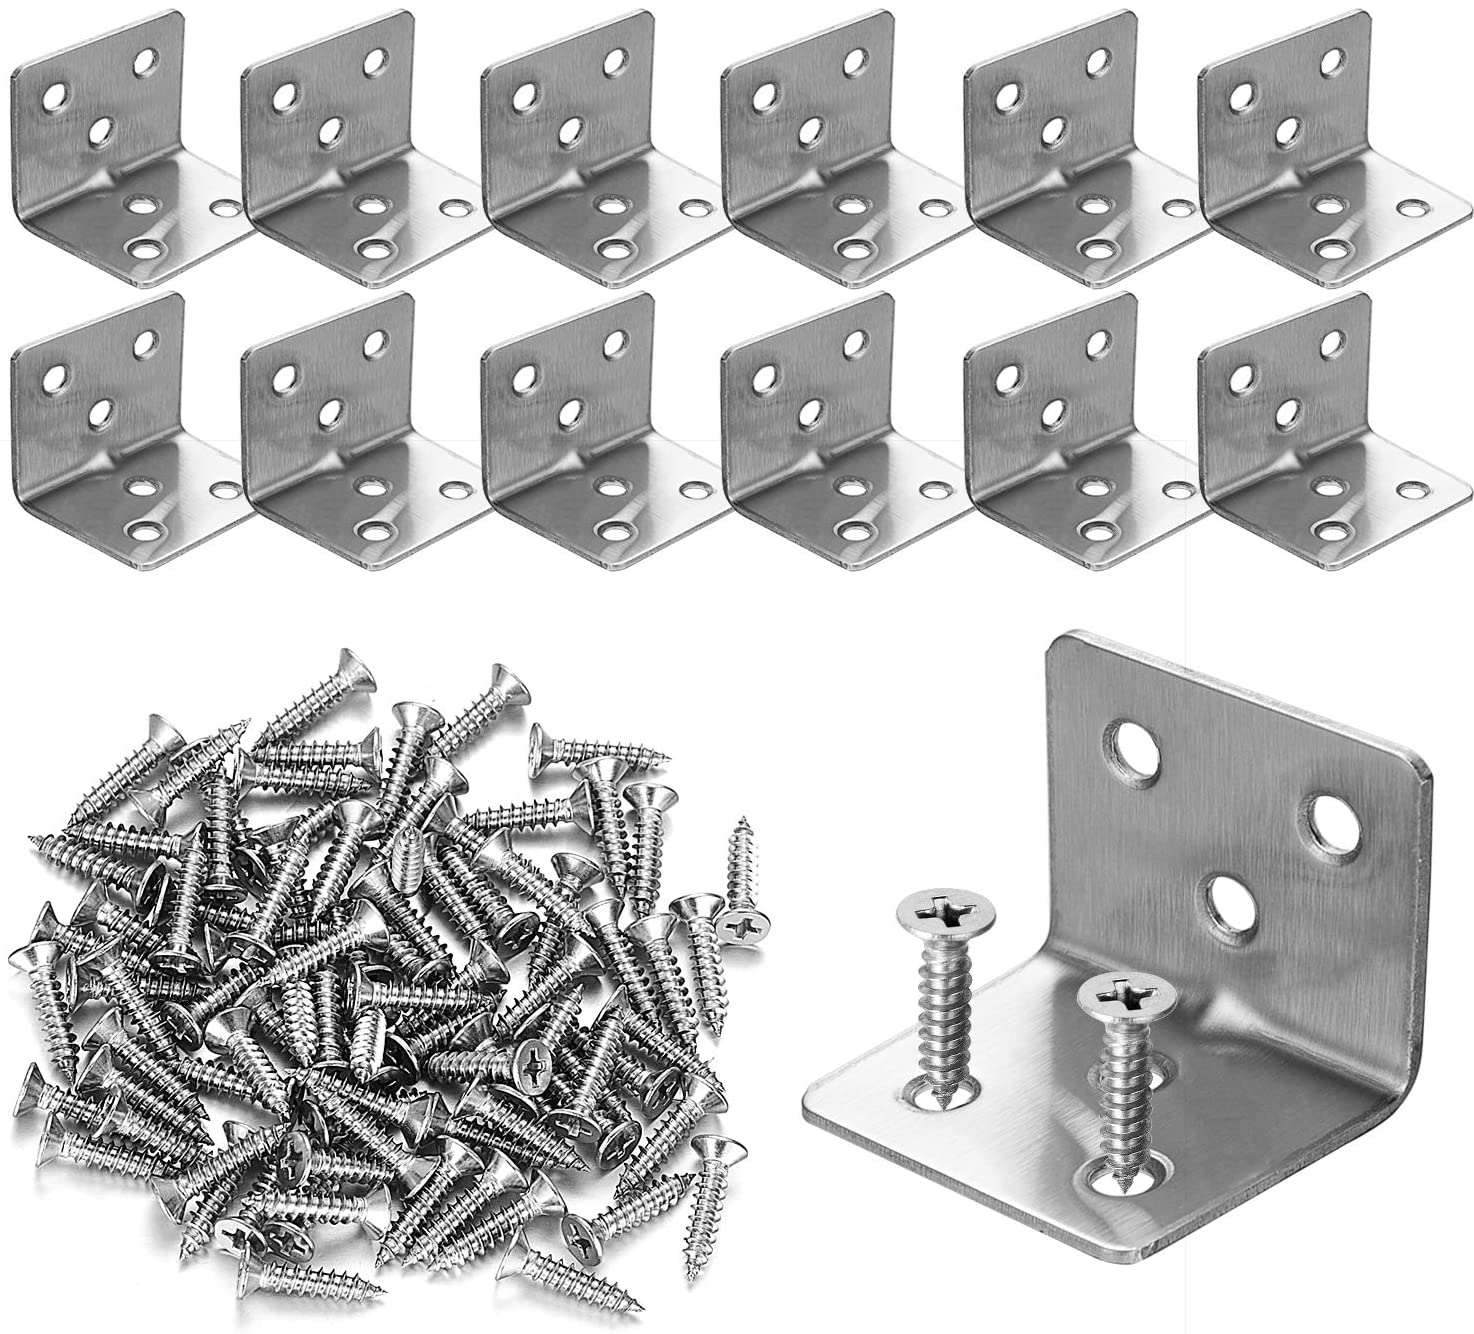 Heavy Duty L Bracket Desks Silver Joint Right Angle Bracket Fastener for Tables Chairs KEILEOHO 100 PCS 1.18 x 1.18 x 0.63 inch Stainless Steel Corner Brace Dressers Bed